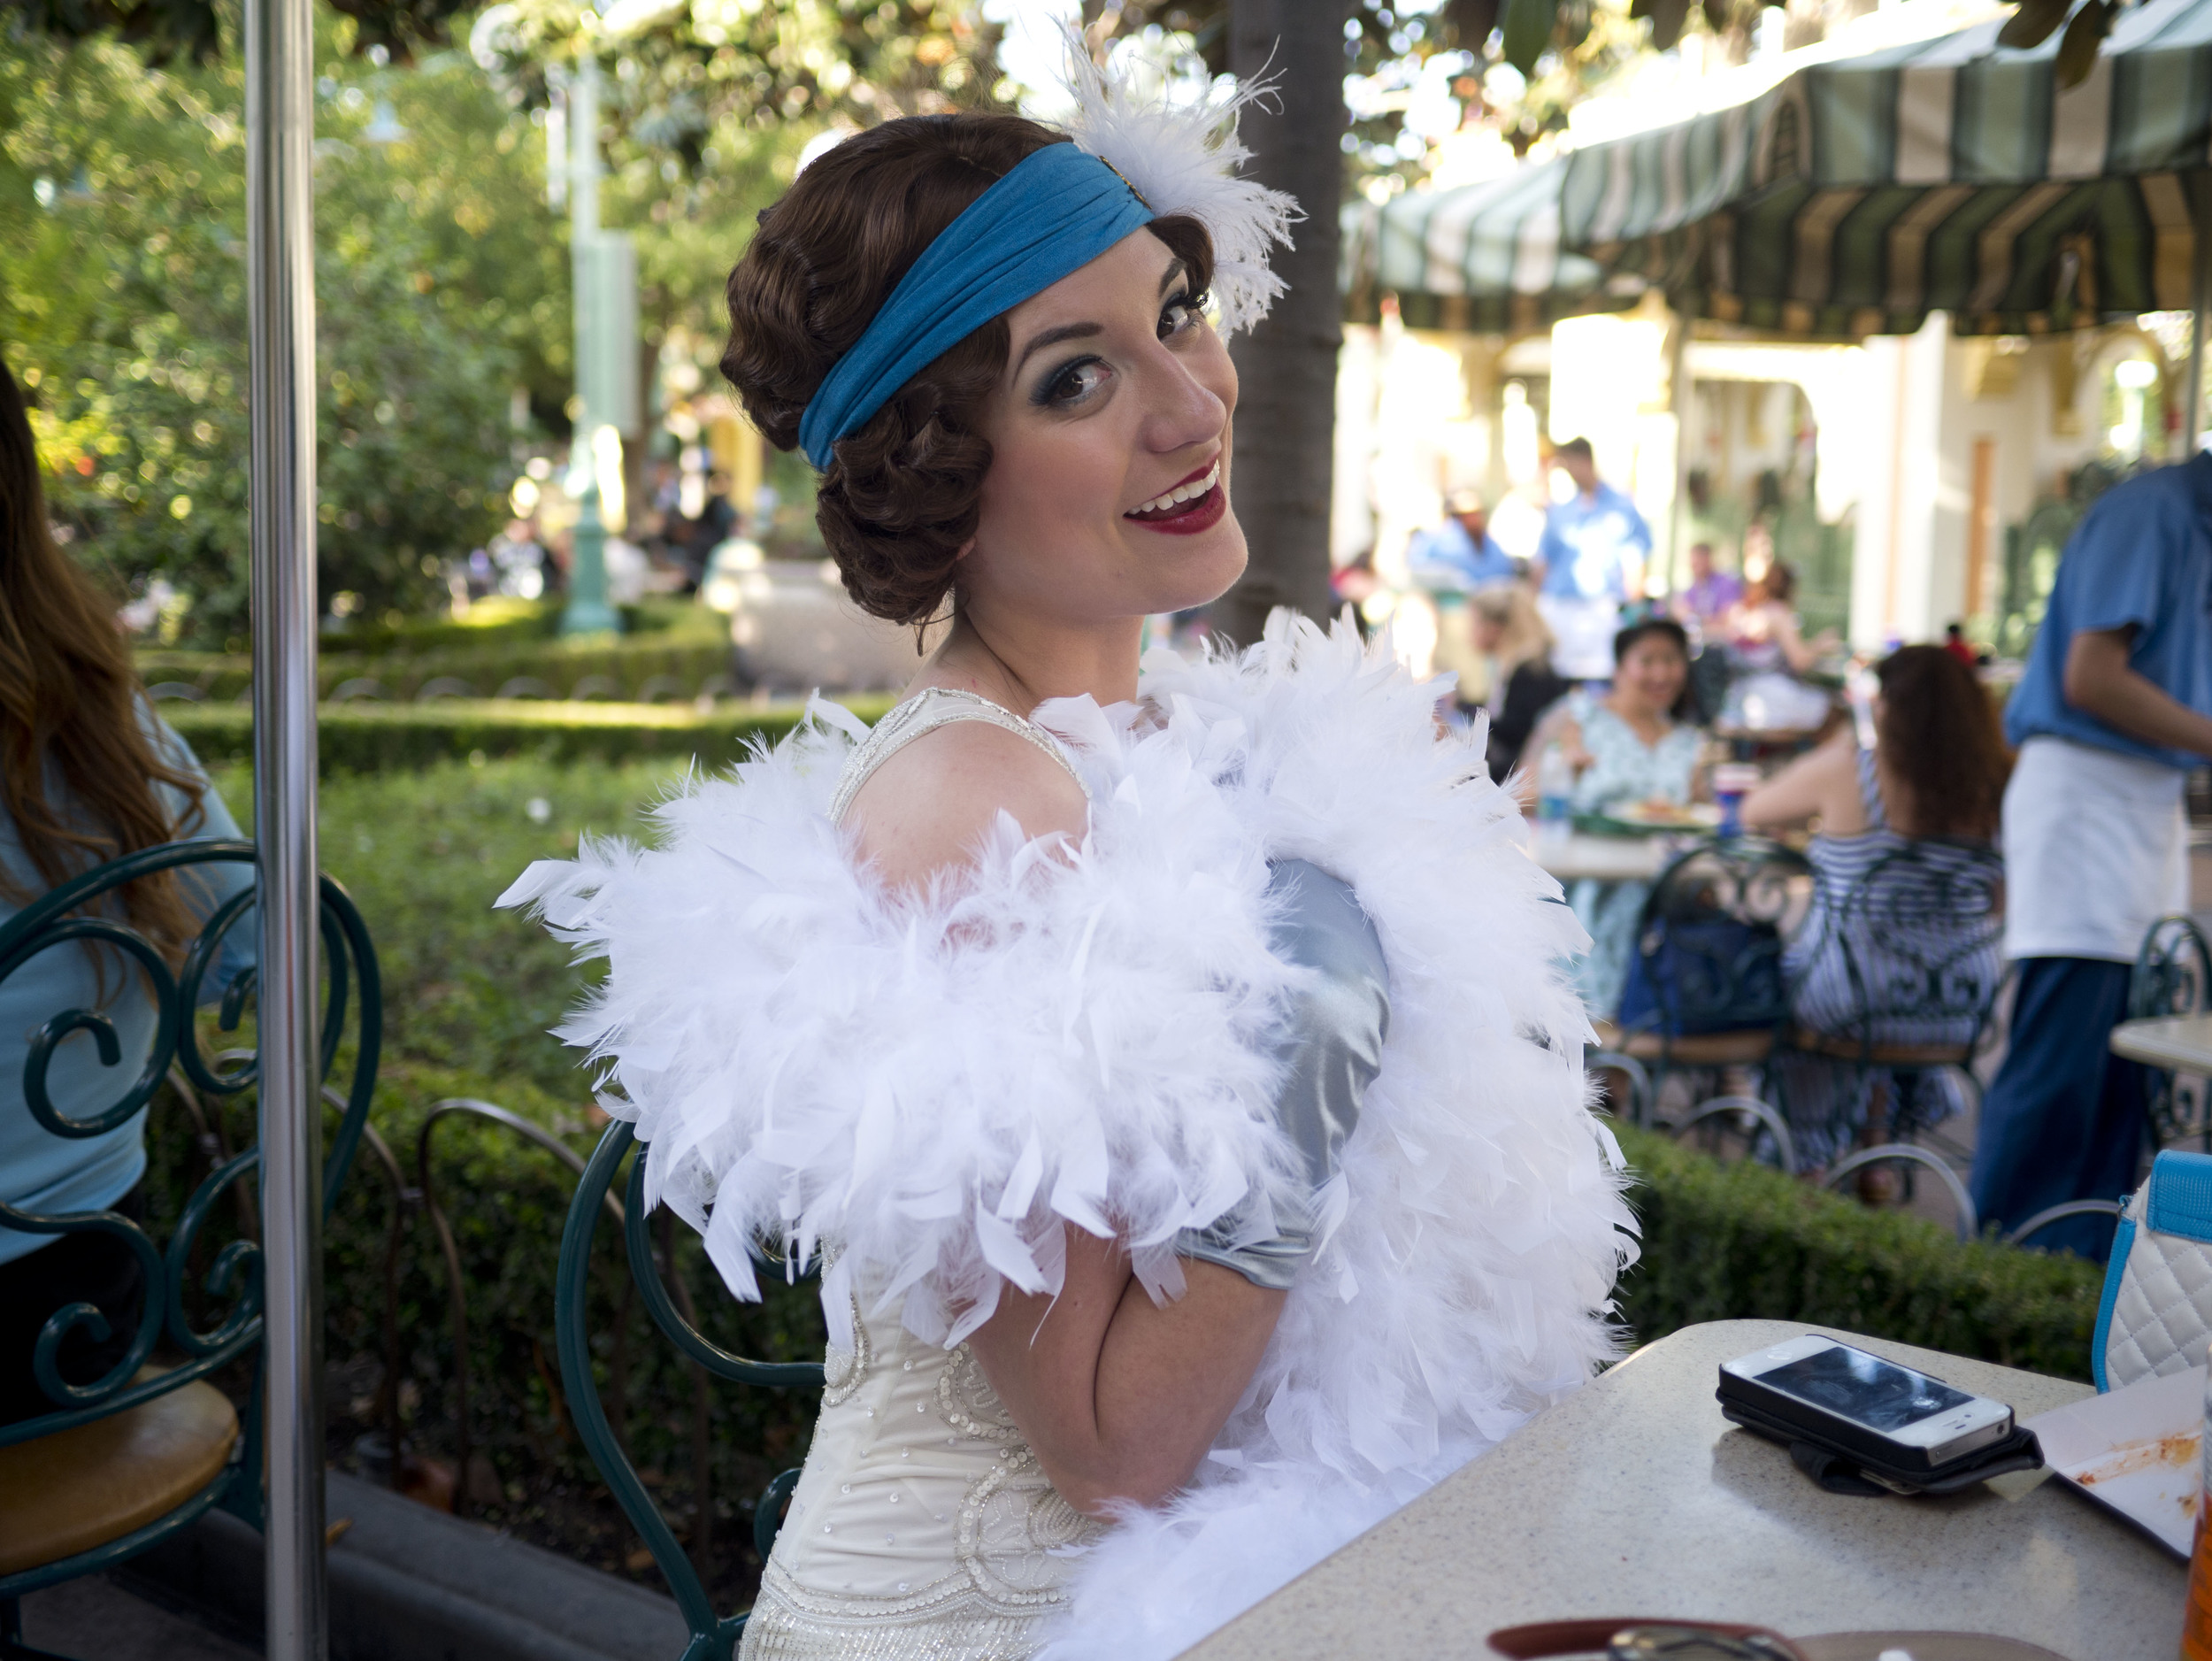 5-2-16 Spring Dapper Day 004.jpg